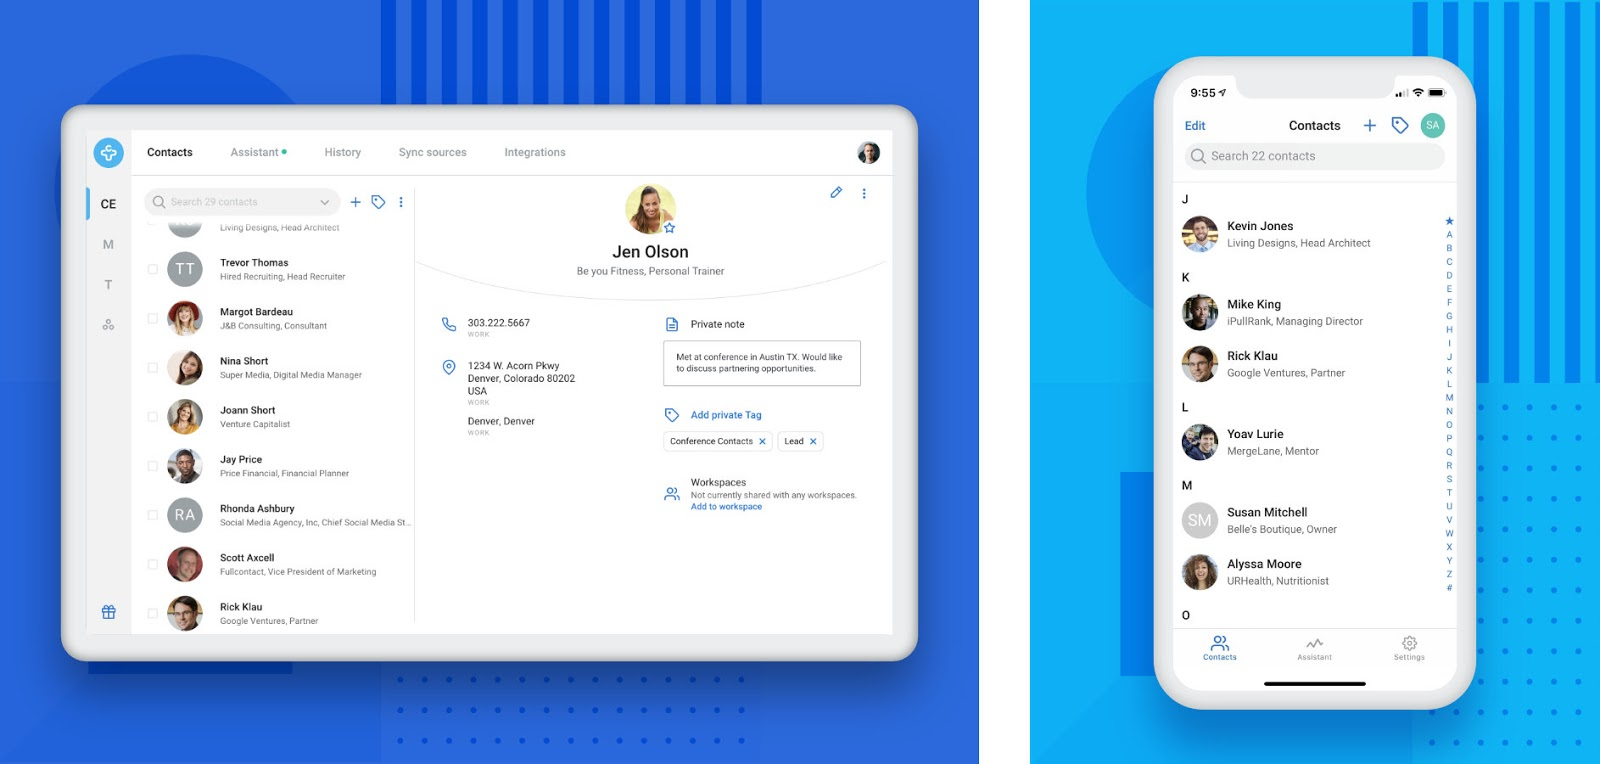 Contacts+ is available on multiple platforms